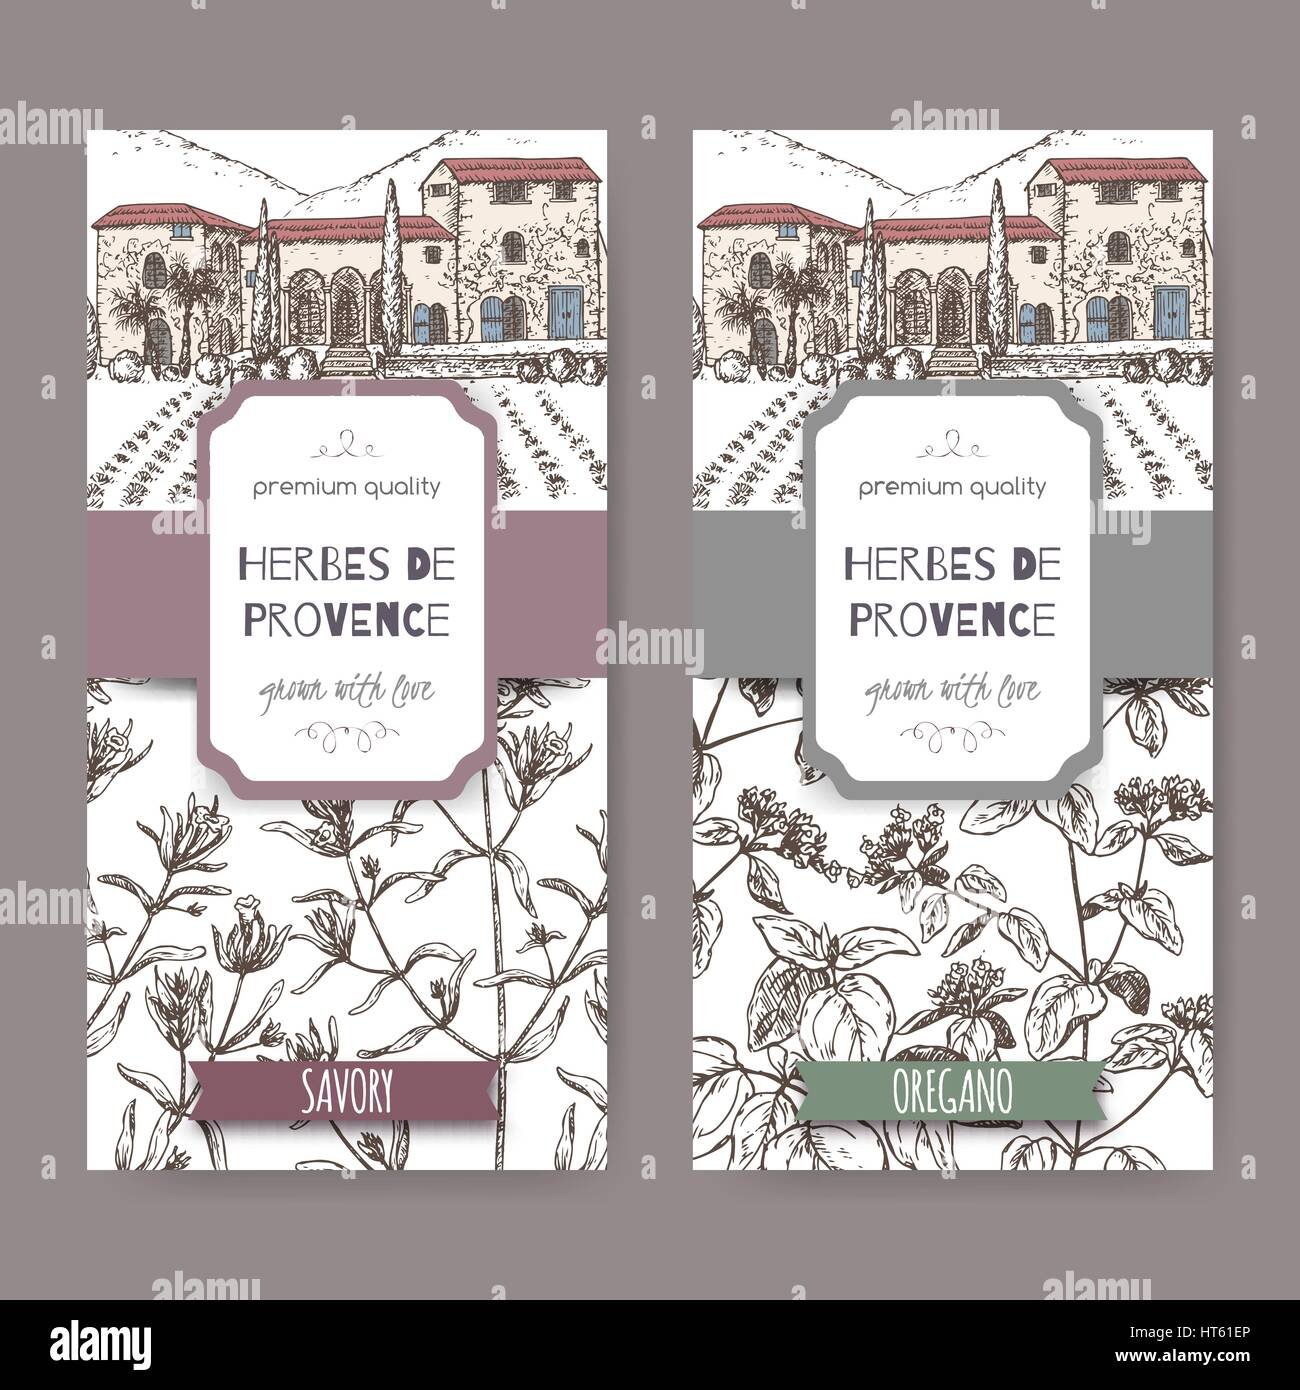 Two Herbes de Provence labels with cottage, savory and oregano. Stock Vector